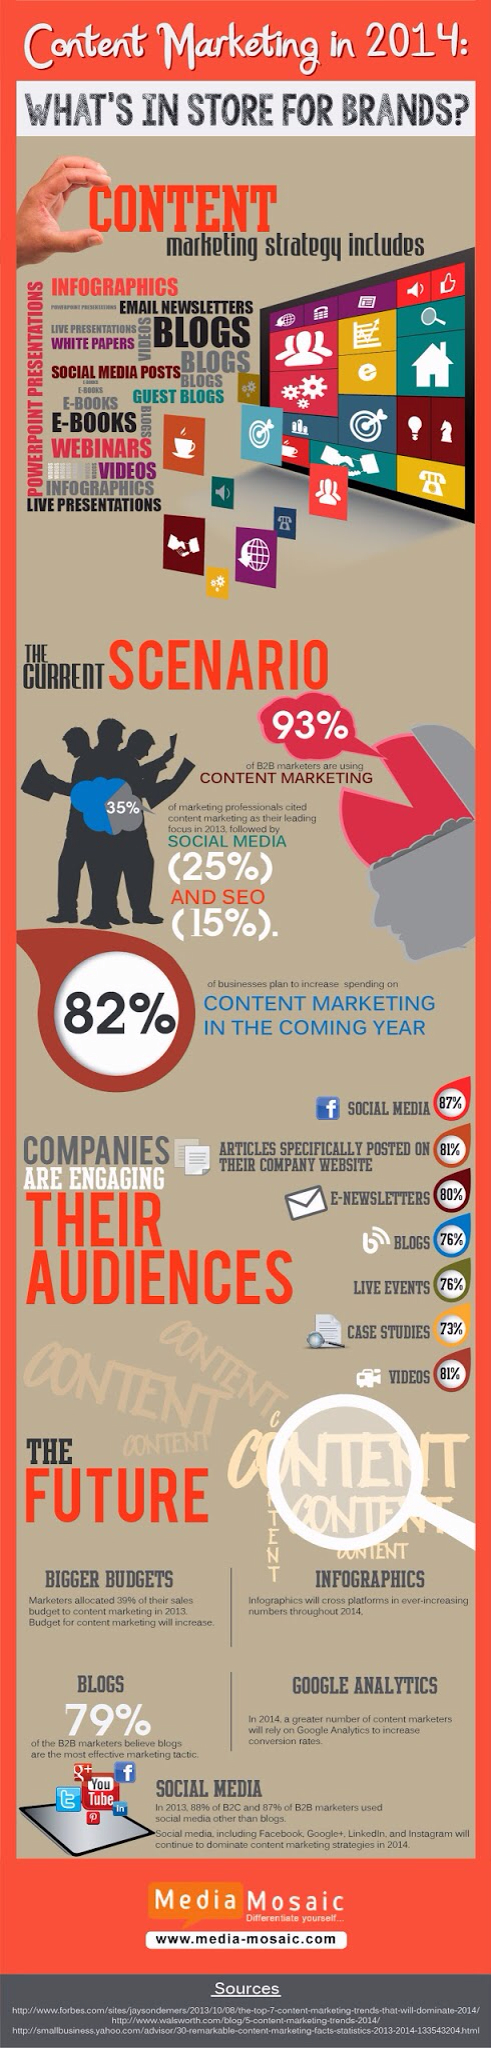 Content Marketing in 2014